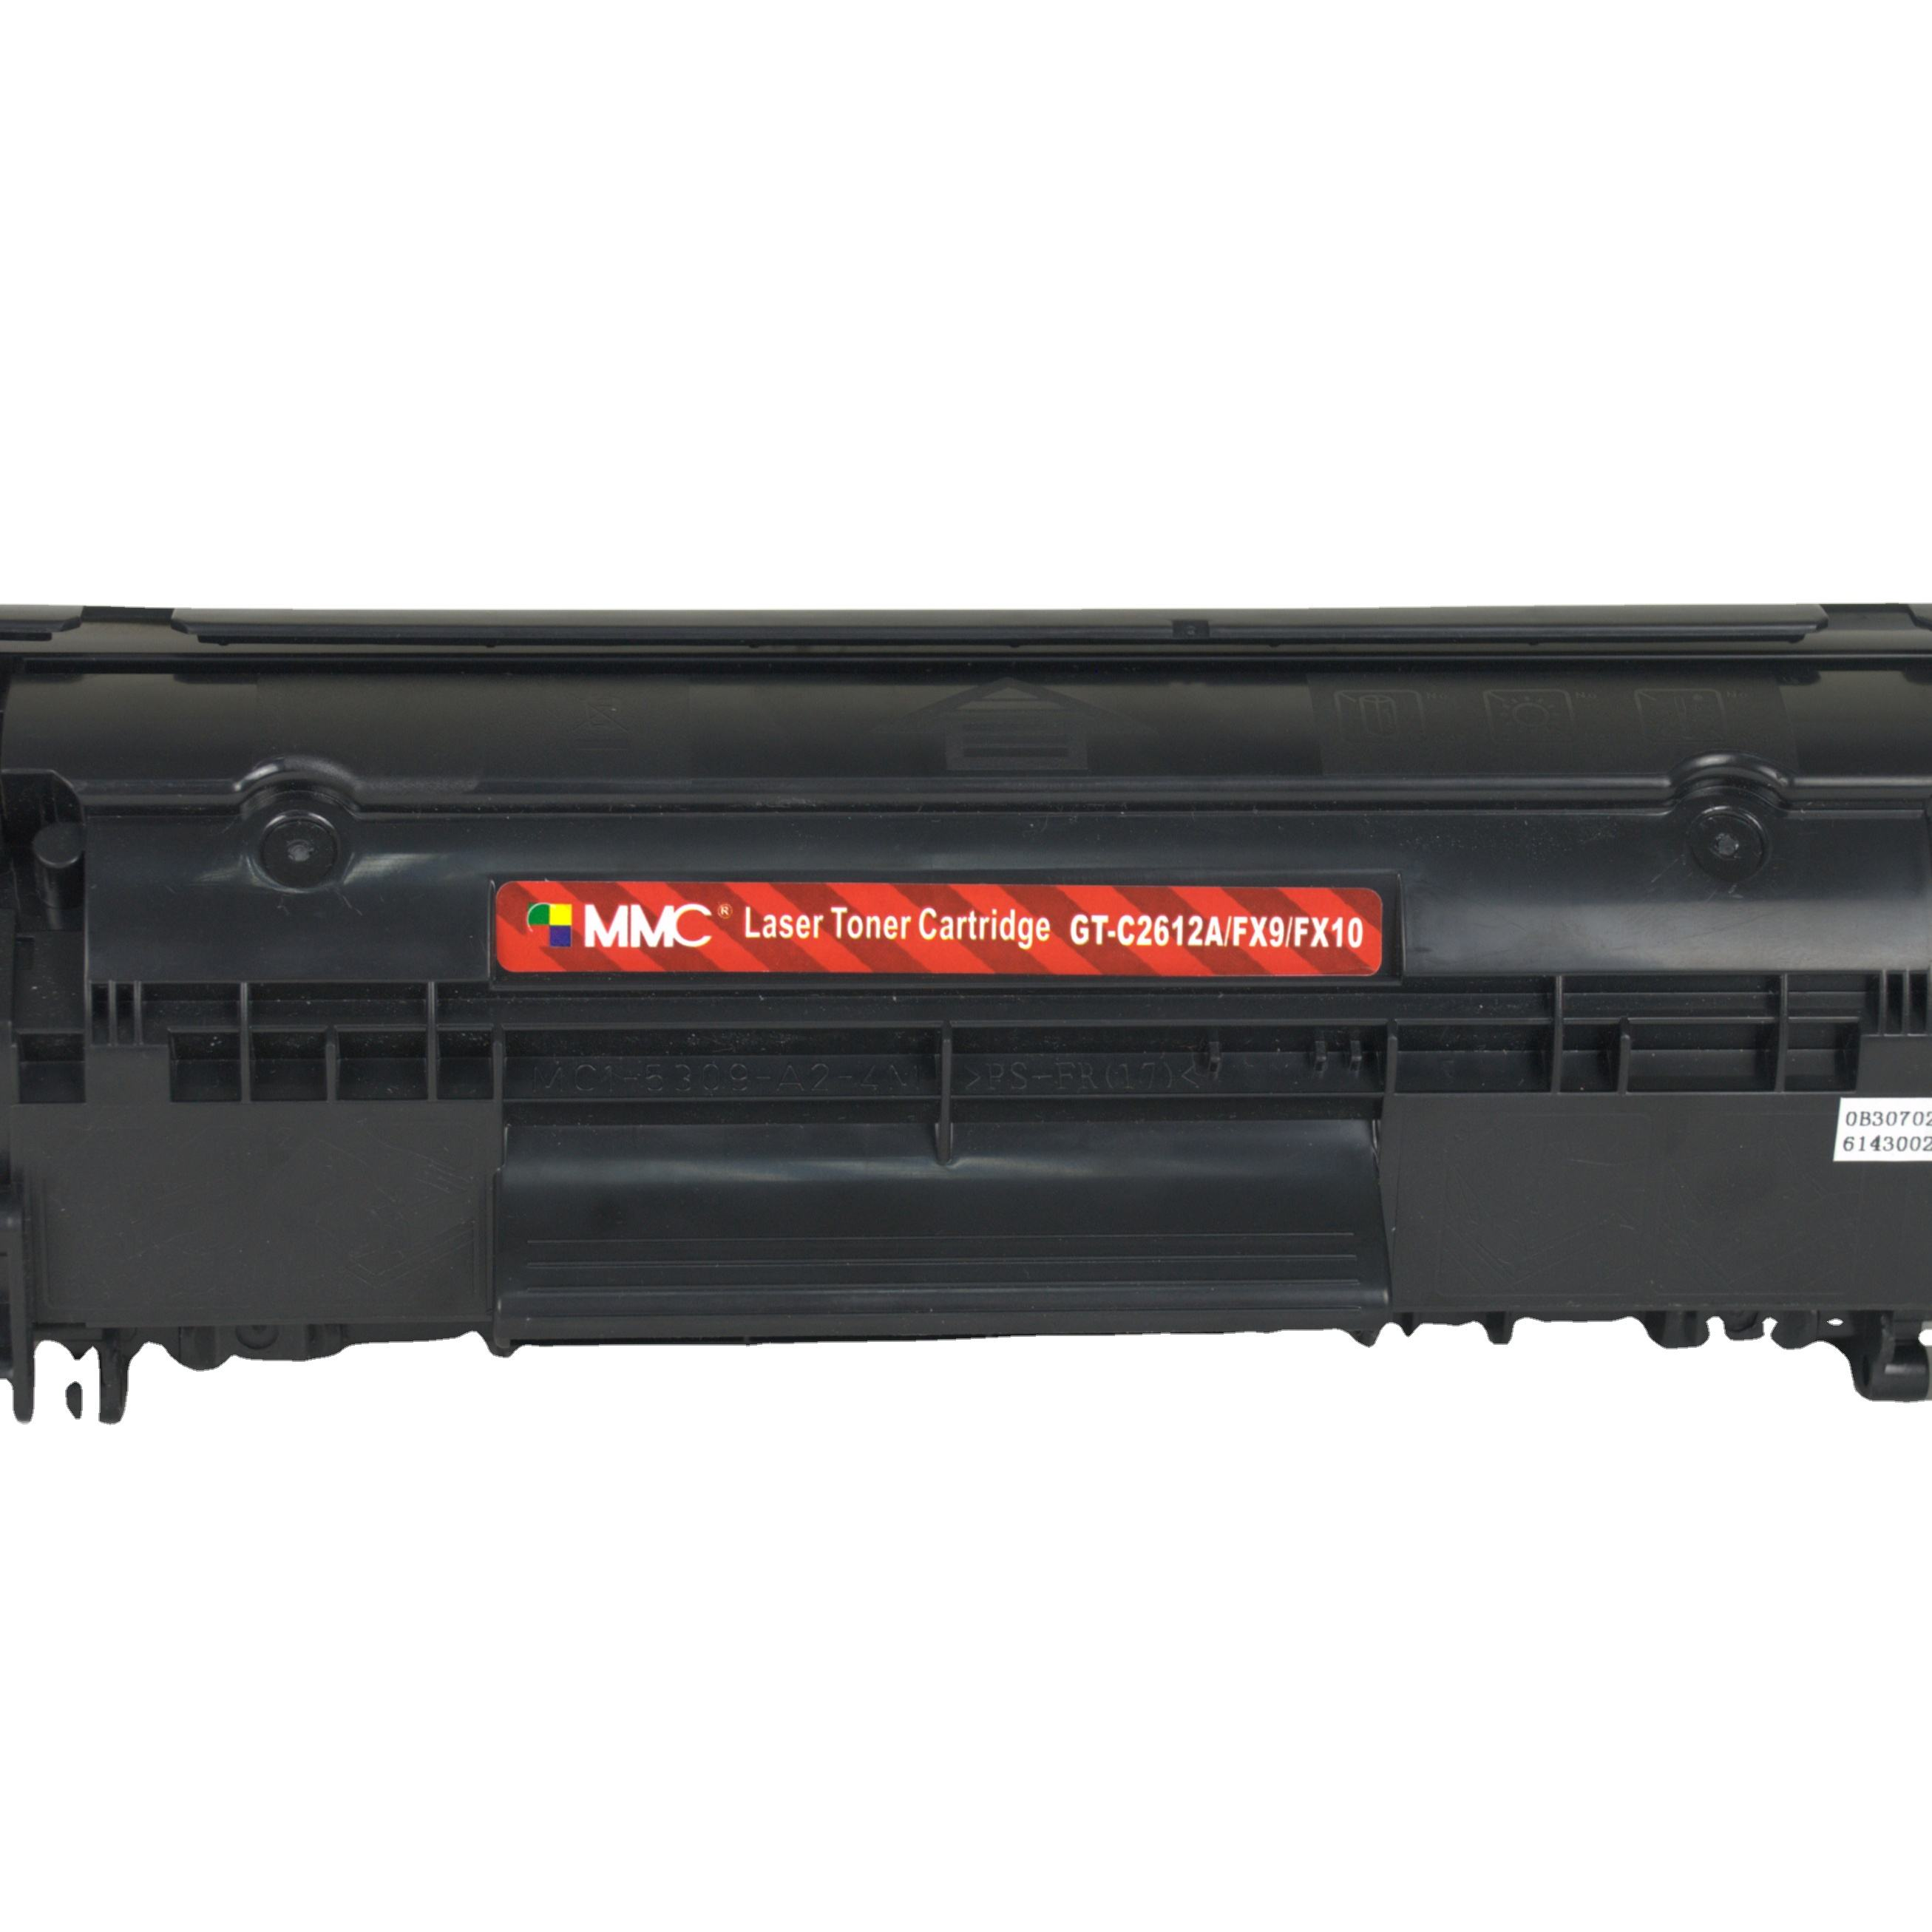 MMC wholesale compatible toner cartridge for HP Q2612A 2612A 12A 2612 plus HP 1005 1020 1022 m1005mfp laserjet printer toner